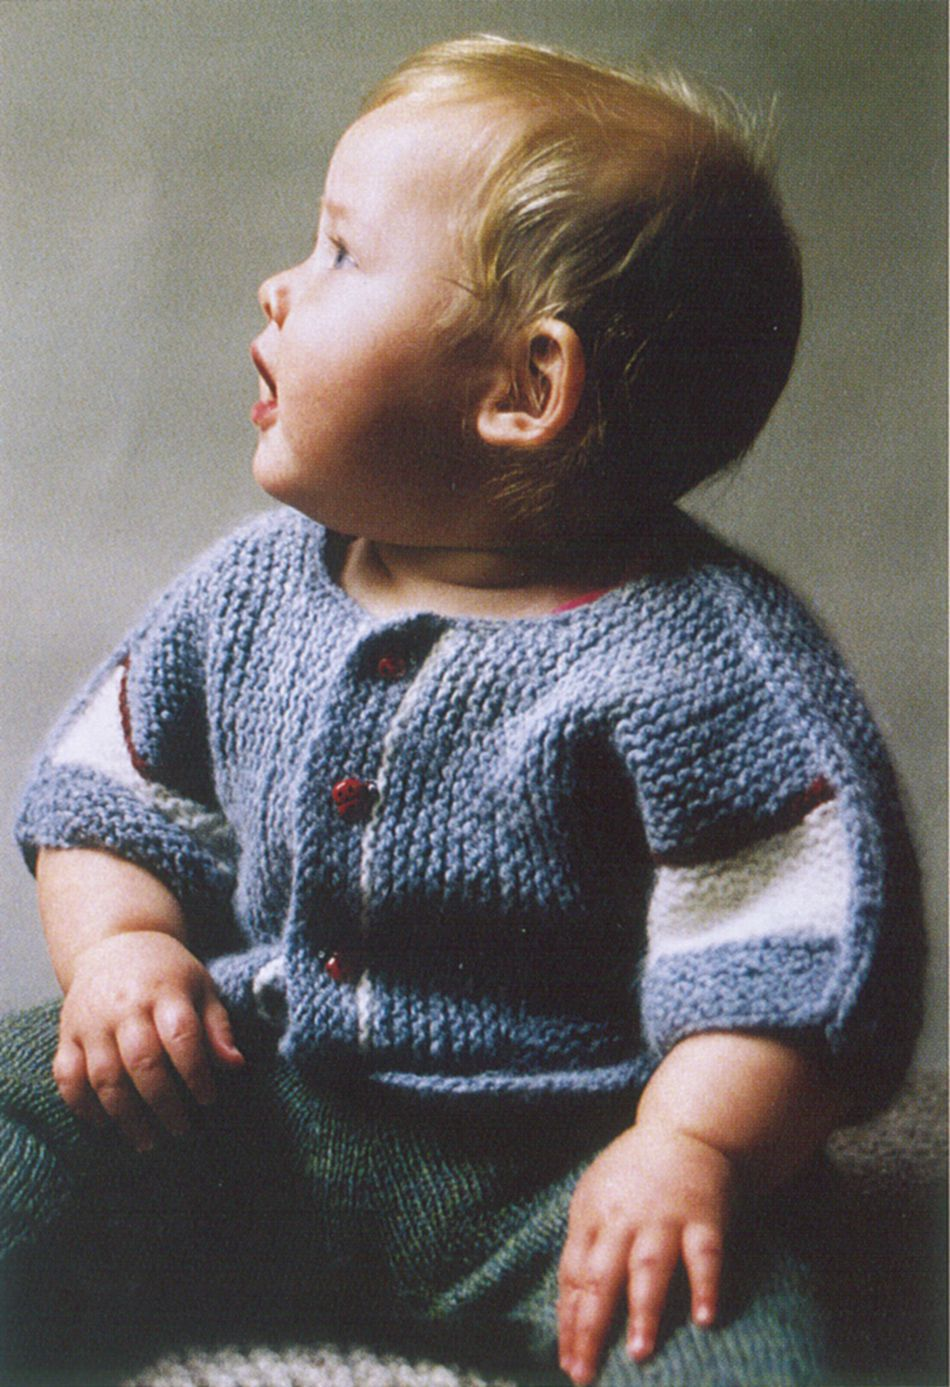 Knitting Patterns Elizabeth Zimmermannaposs ABCSJ Baby Surprise Jacket